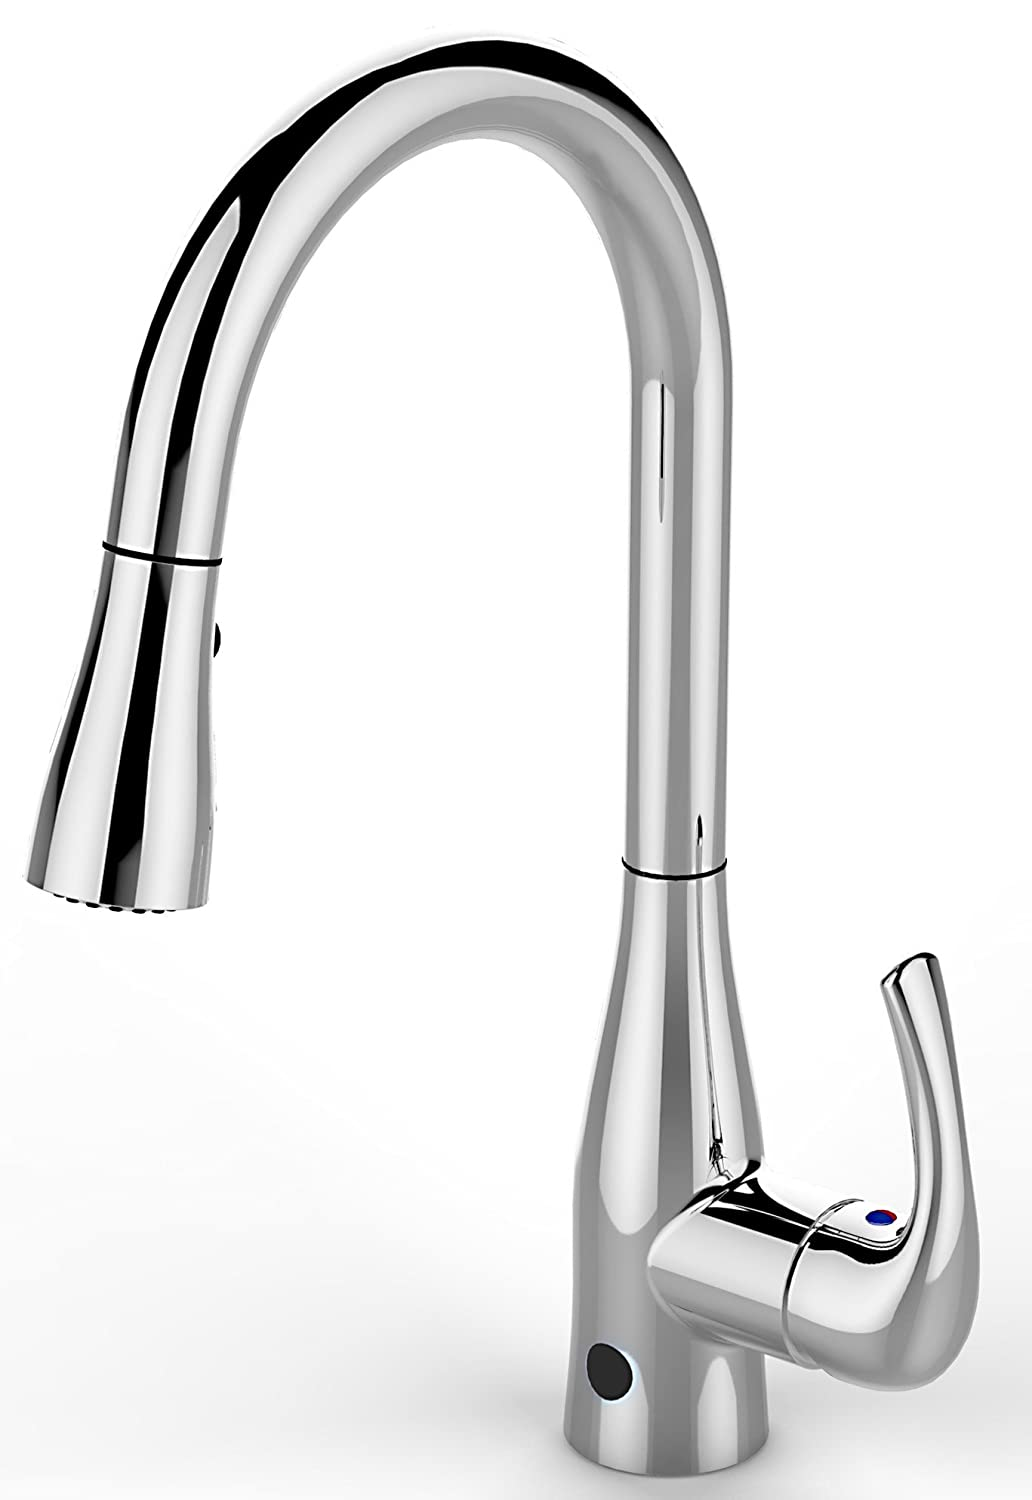 flow faucet from biobidet hands free motion sensing technology flow faucet from biobidet hands free motion sensing technology chrome kitchen faucet dual spray head offers 2 styles of water easy installation